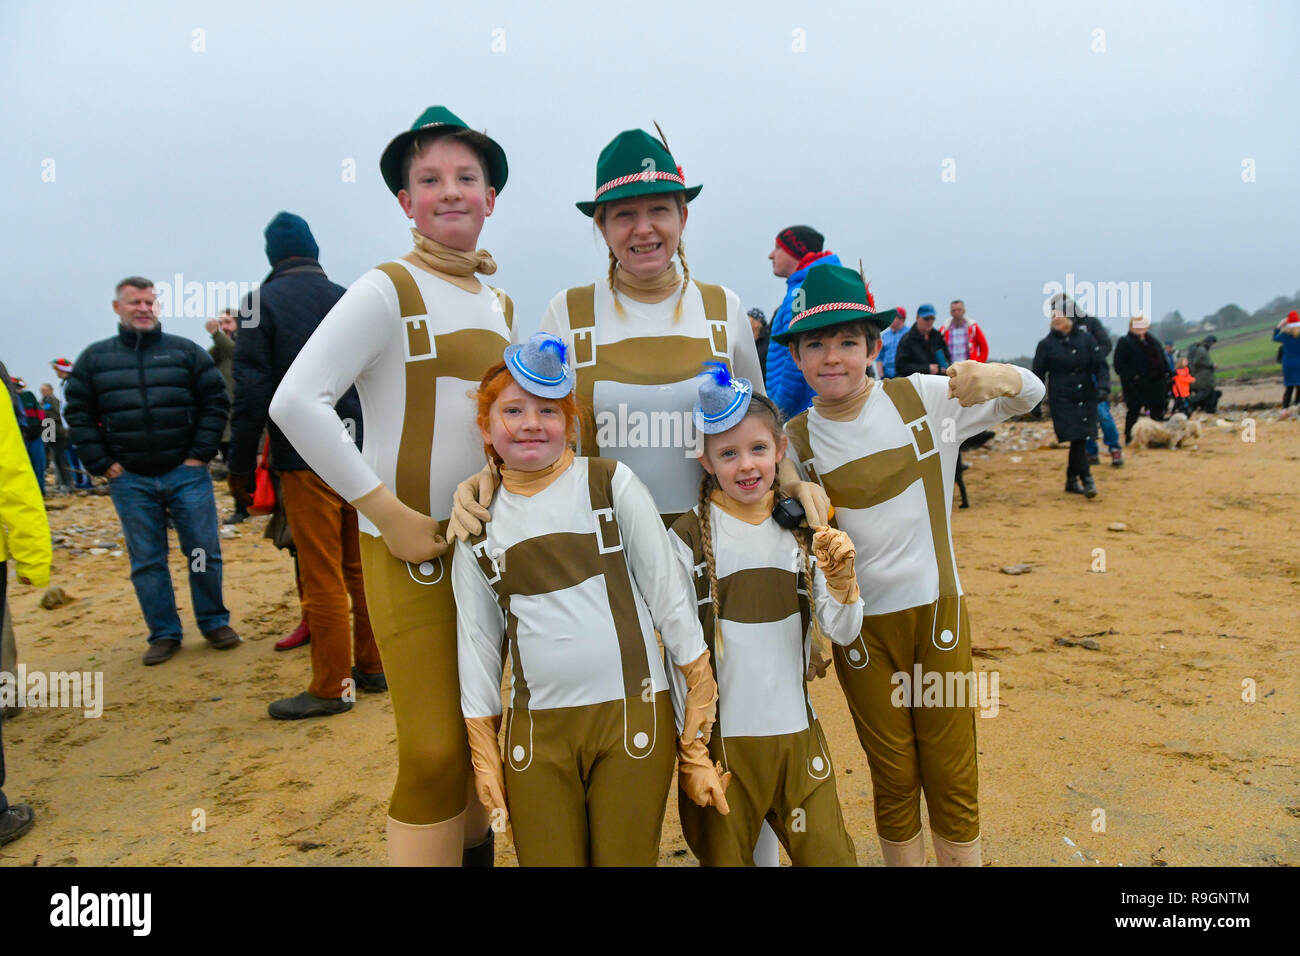 Charmouth, Dorset, UK. 25th Dec, 2018. Christmas day swimmers Jack Straham, Milly Straham (Both visting from Canada) with Nikki, Finn and Darcy McAllister who are all wearing fancy dress before braving the chilly water to take a dip in the sea at Charmouth in Dorset to raise money for the RNLI. Picture Credit: Graham Hunt/Alamy Live News Stock Photo